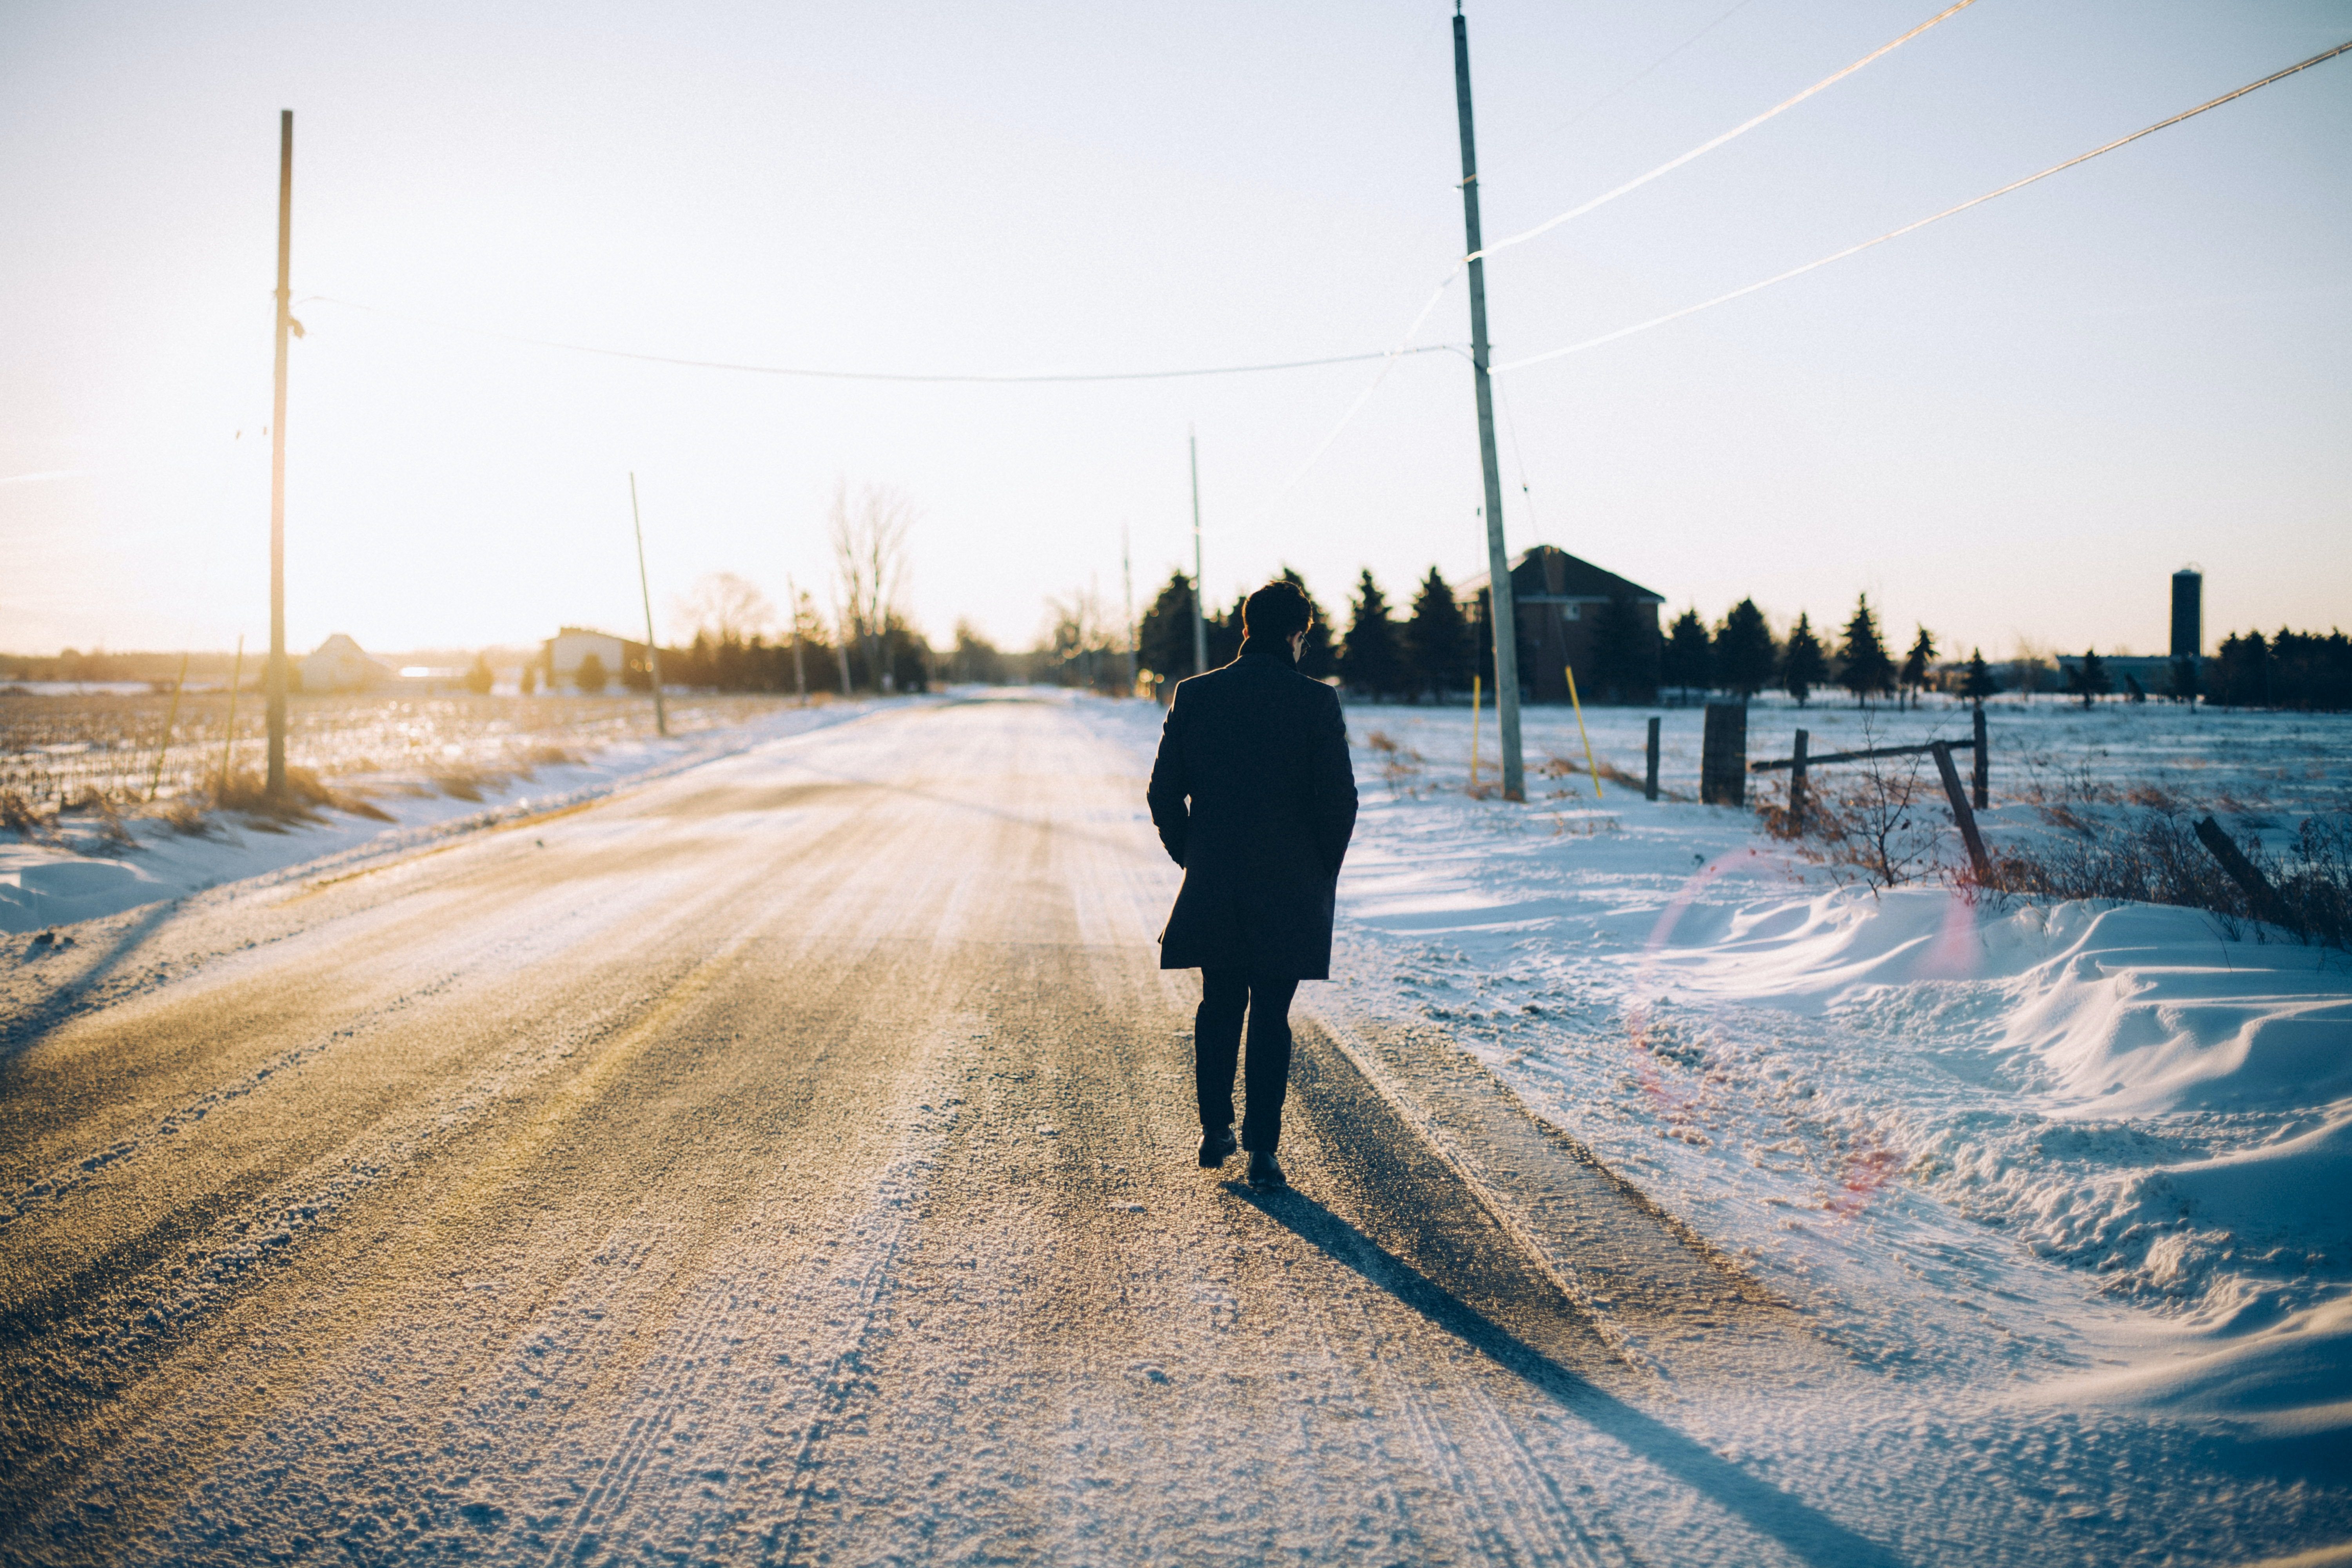 A silhouette of a person walking on a snow covered road